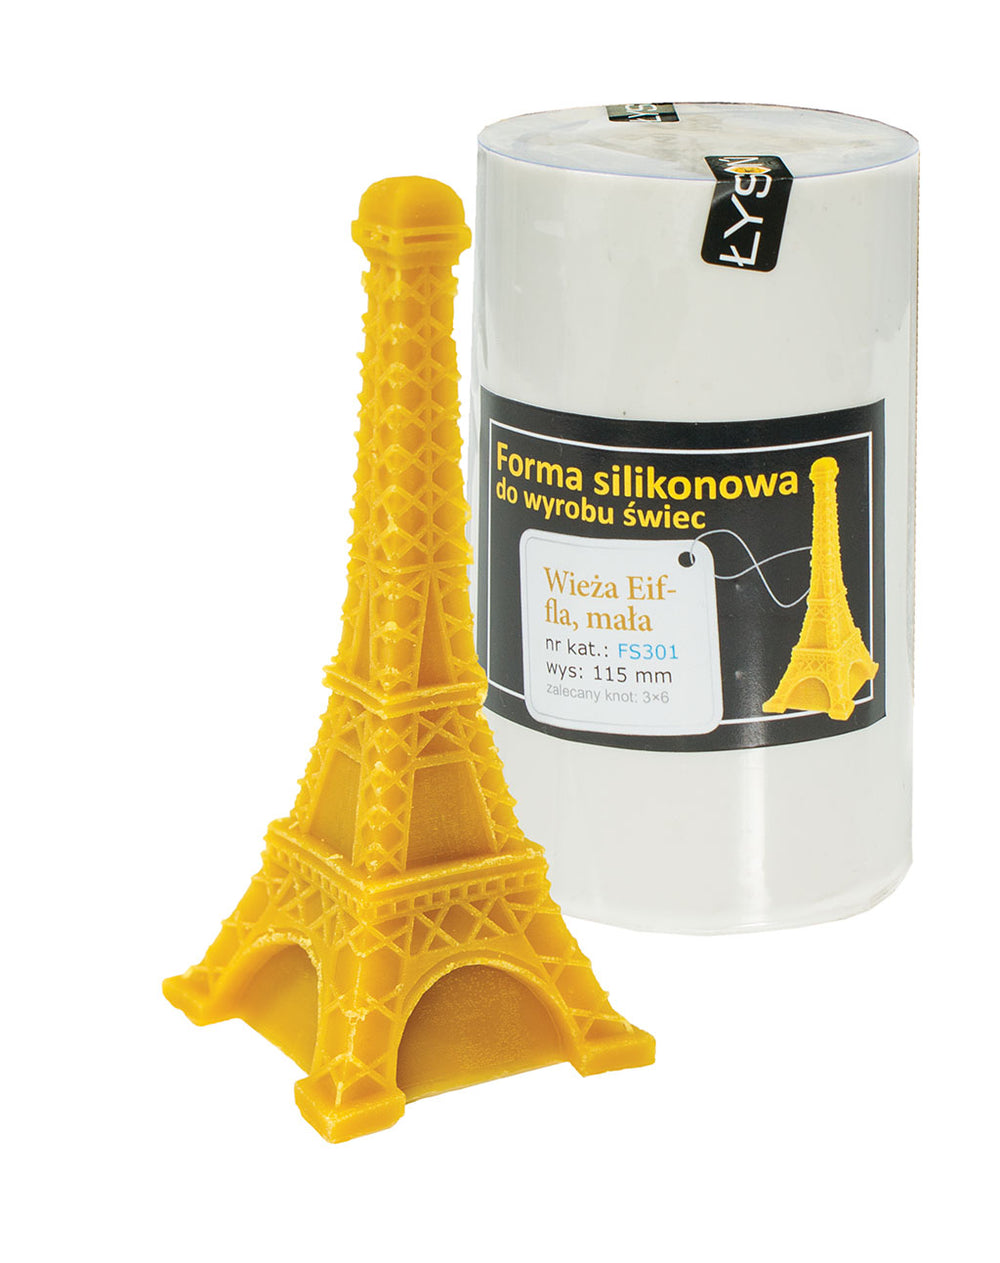 Eiffel Tower Candle Mold, small